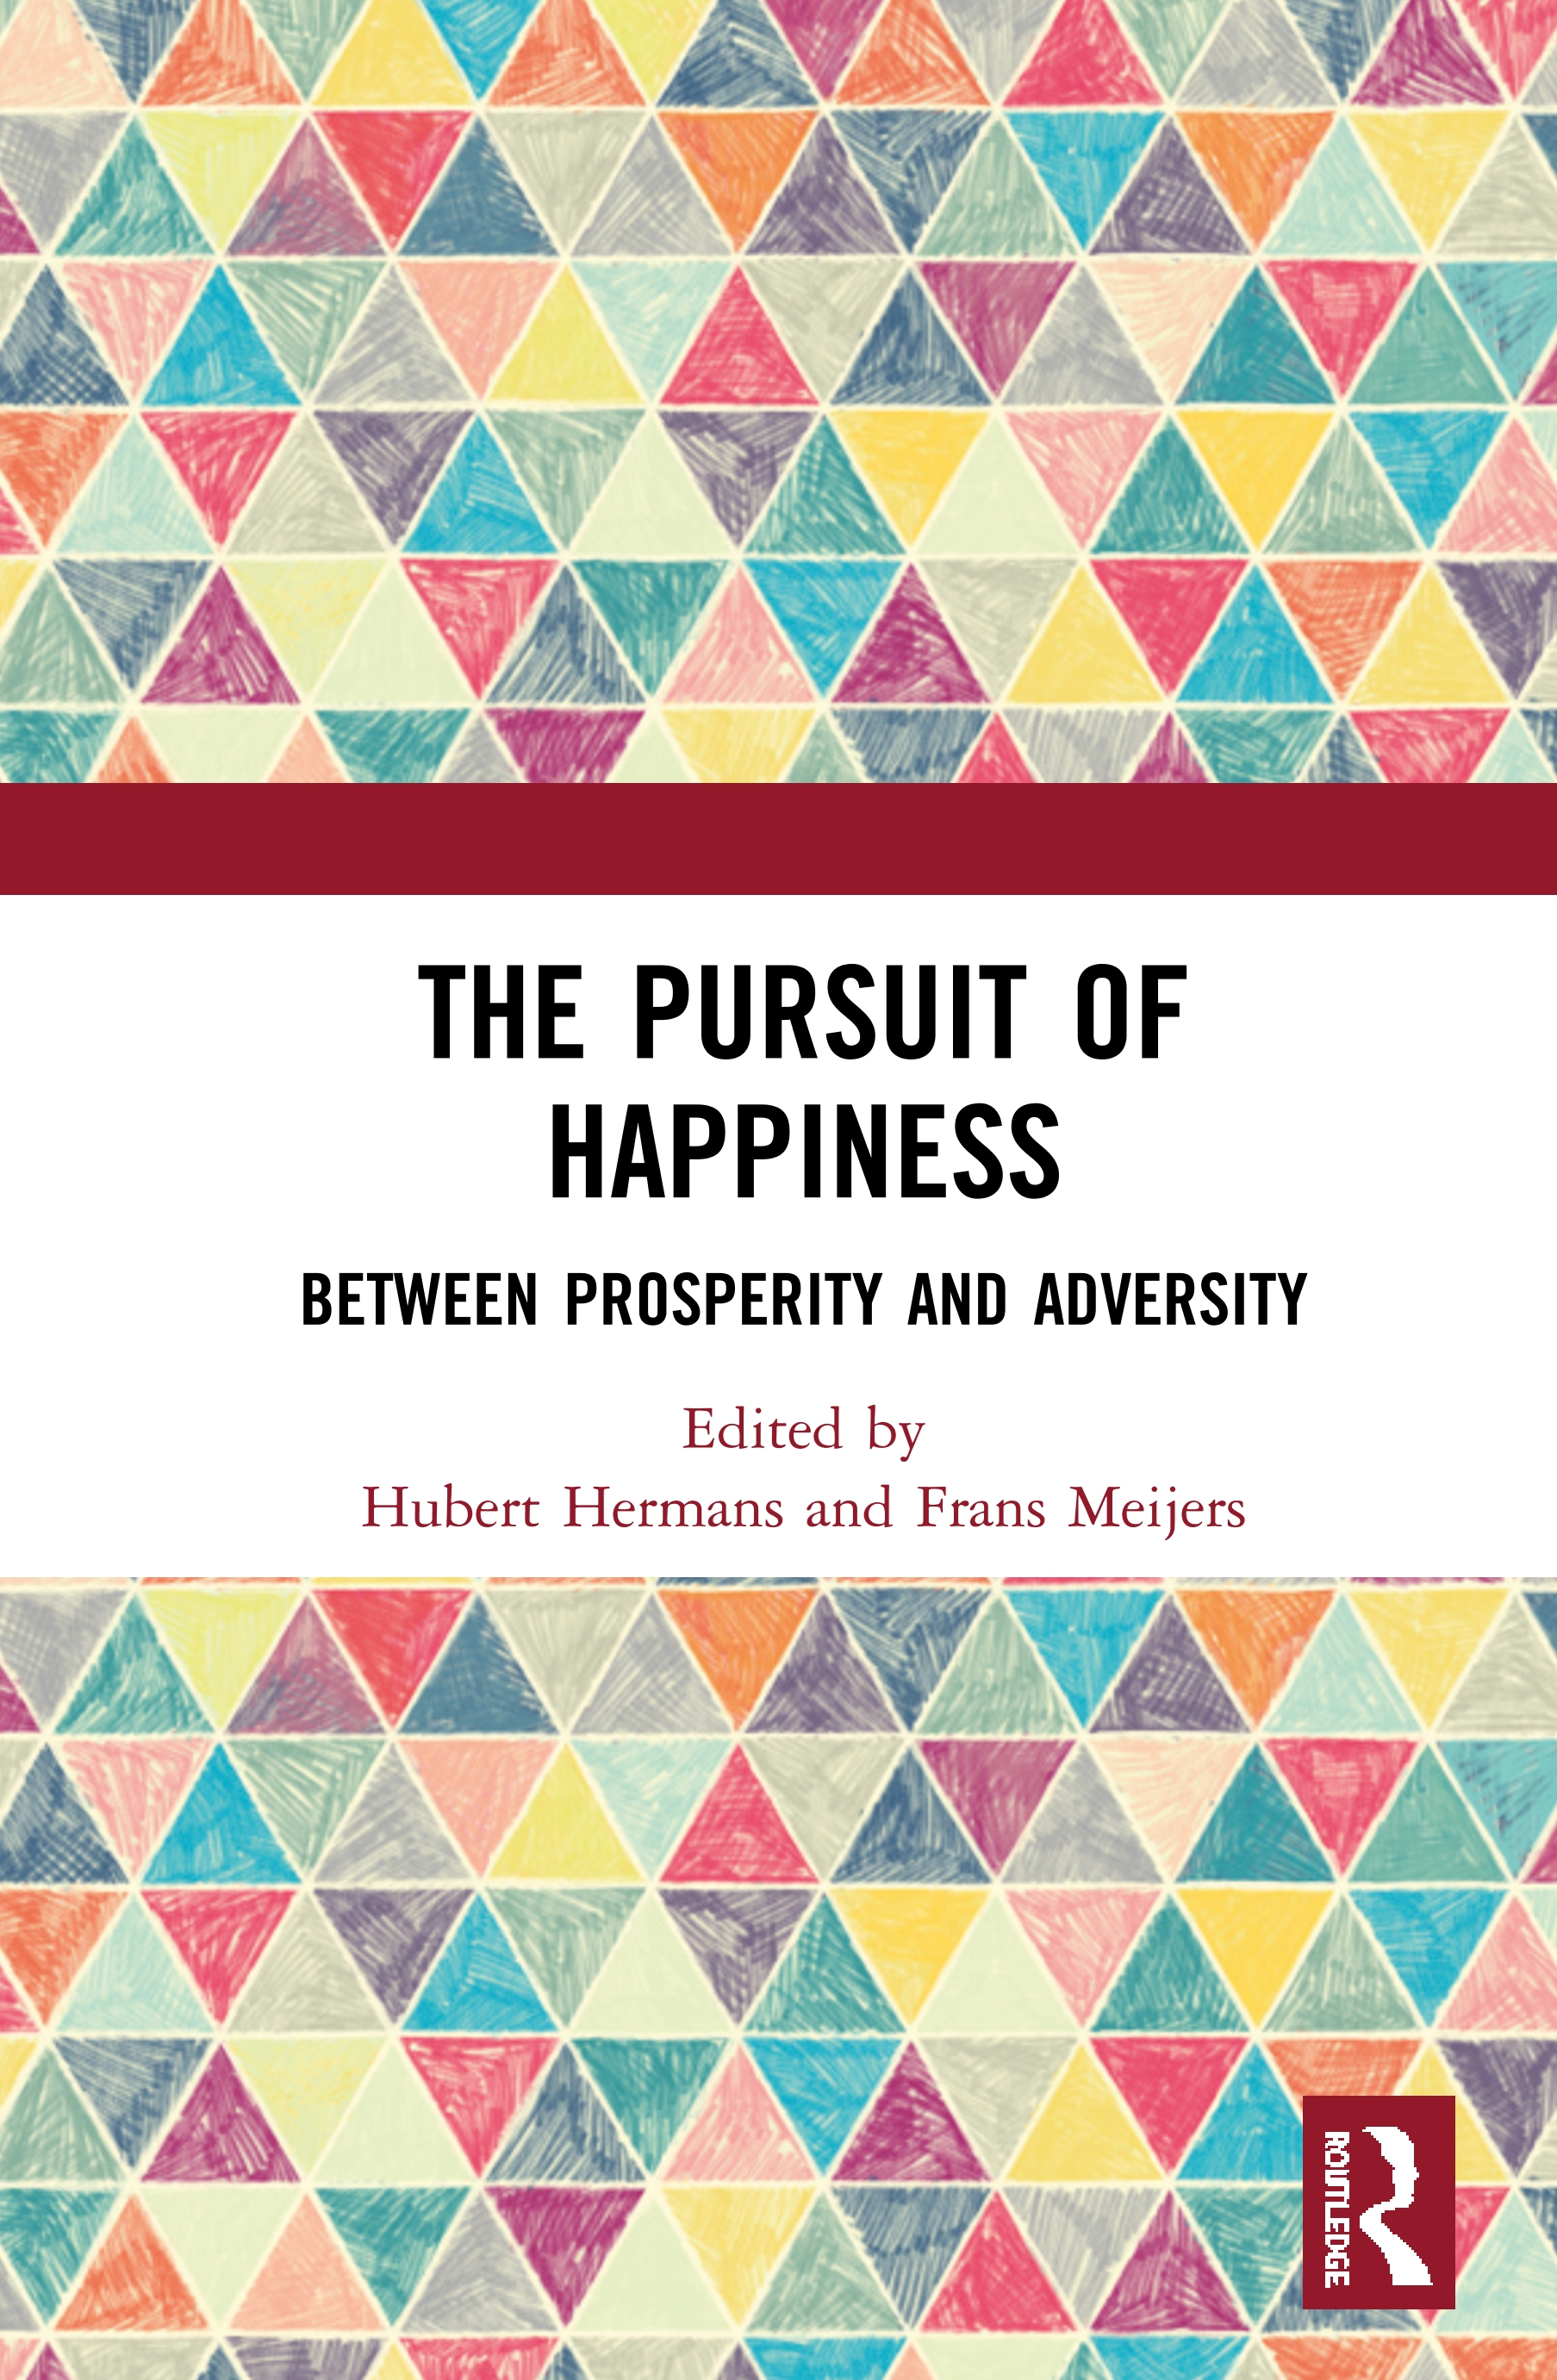 The Pursuit of Happiness: Between Prosperity and Adversity book cover